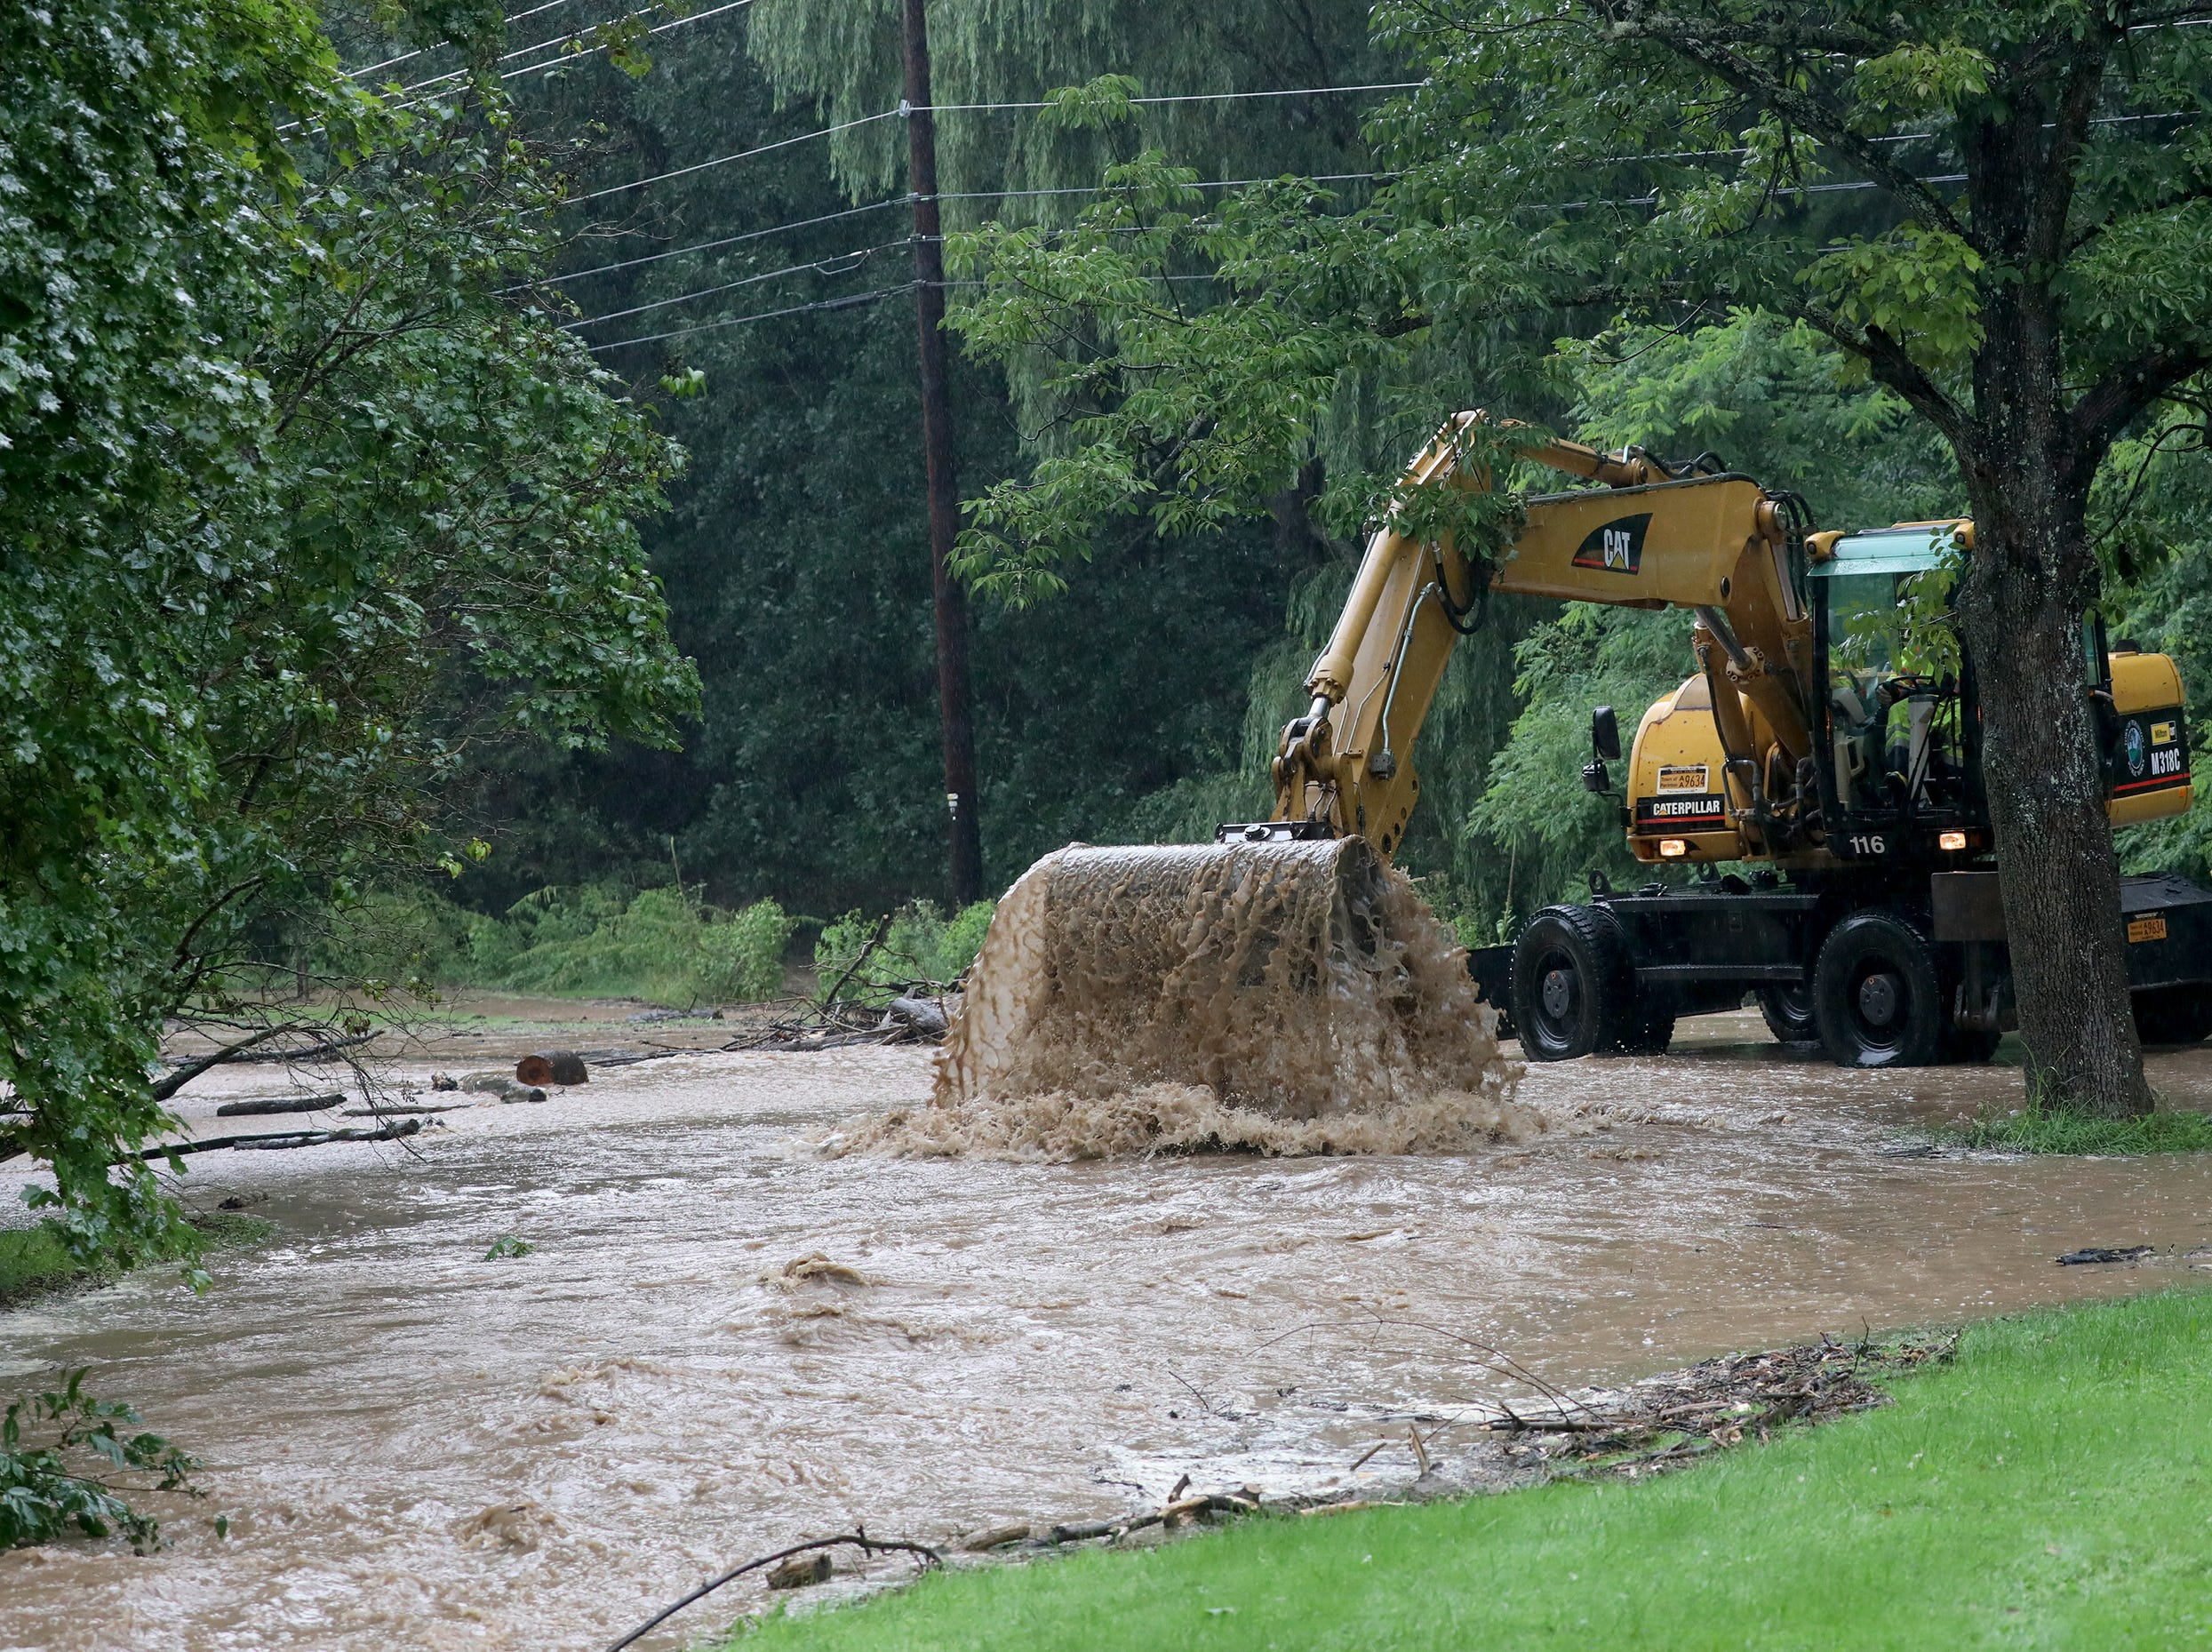 Crews work to unclog storm drains that clogged and flooded Park Rd. In Powder Mills Park near the fish hatchery.